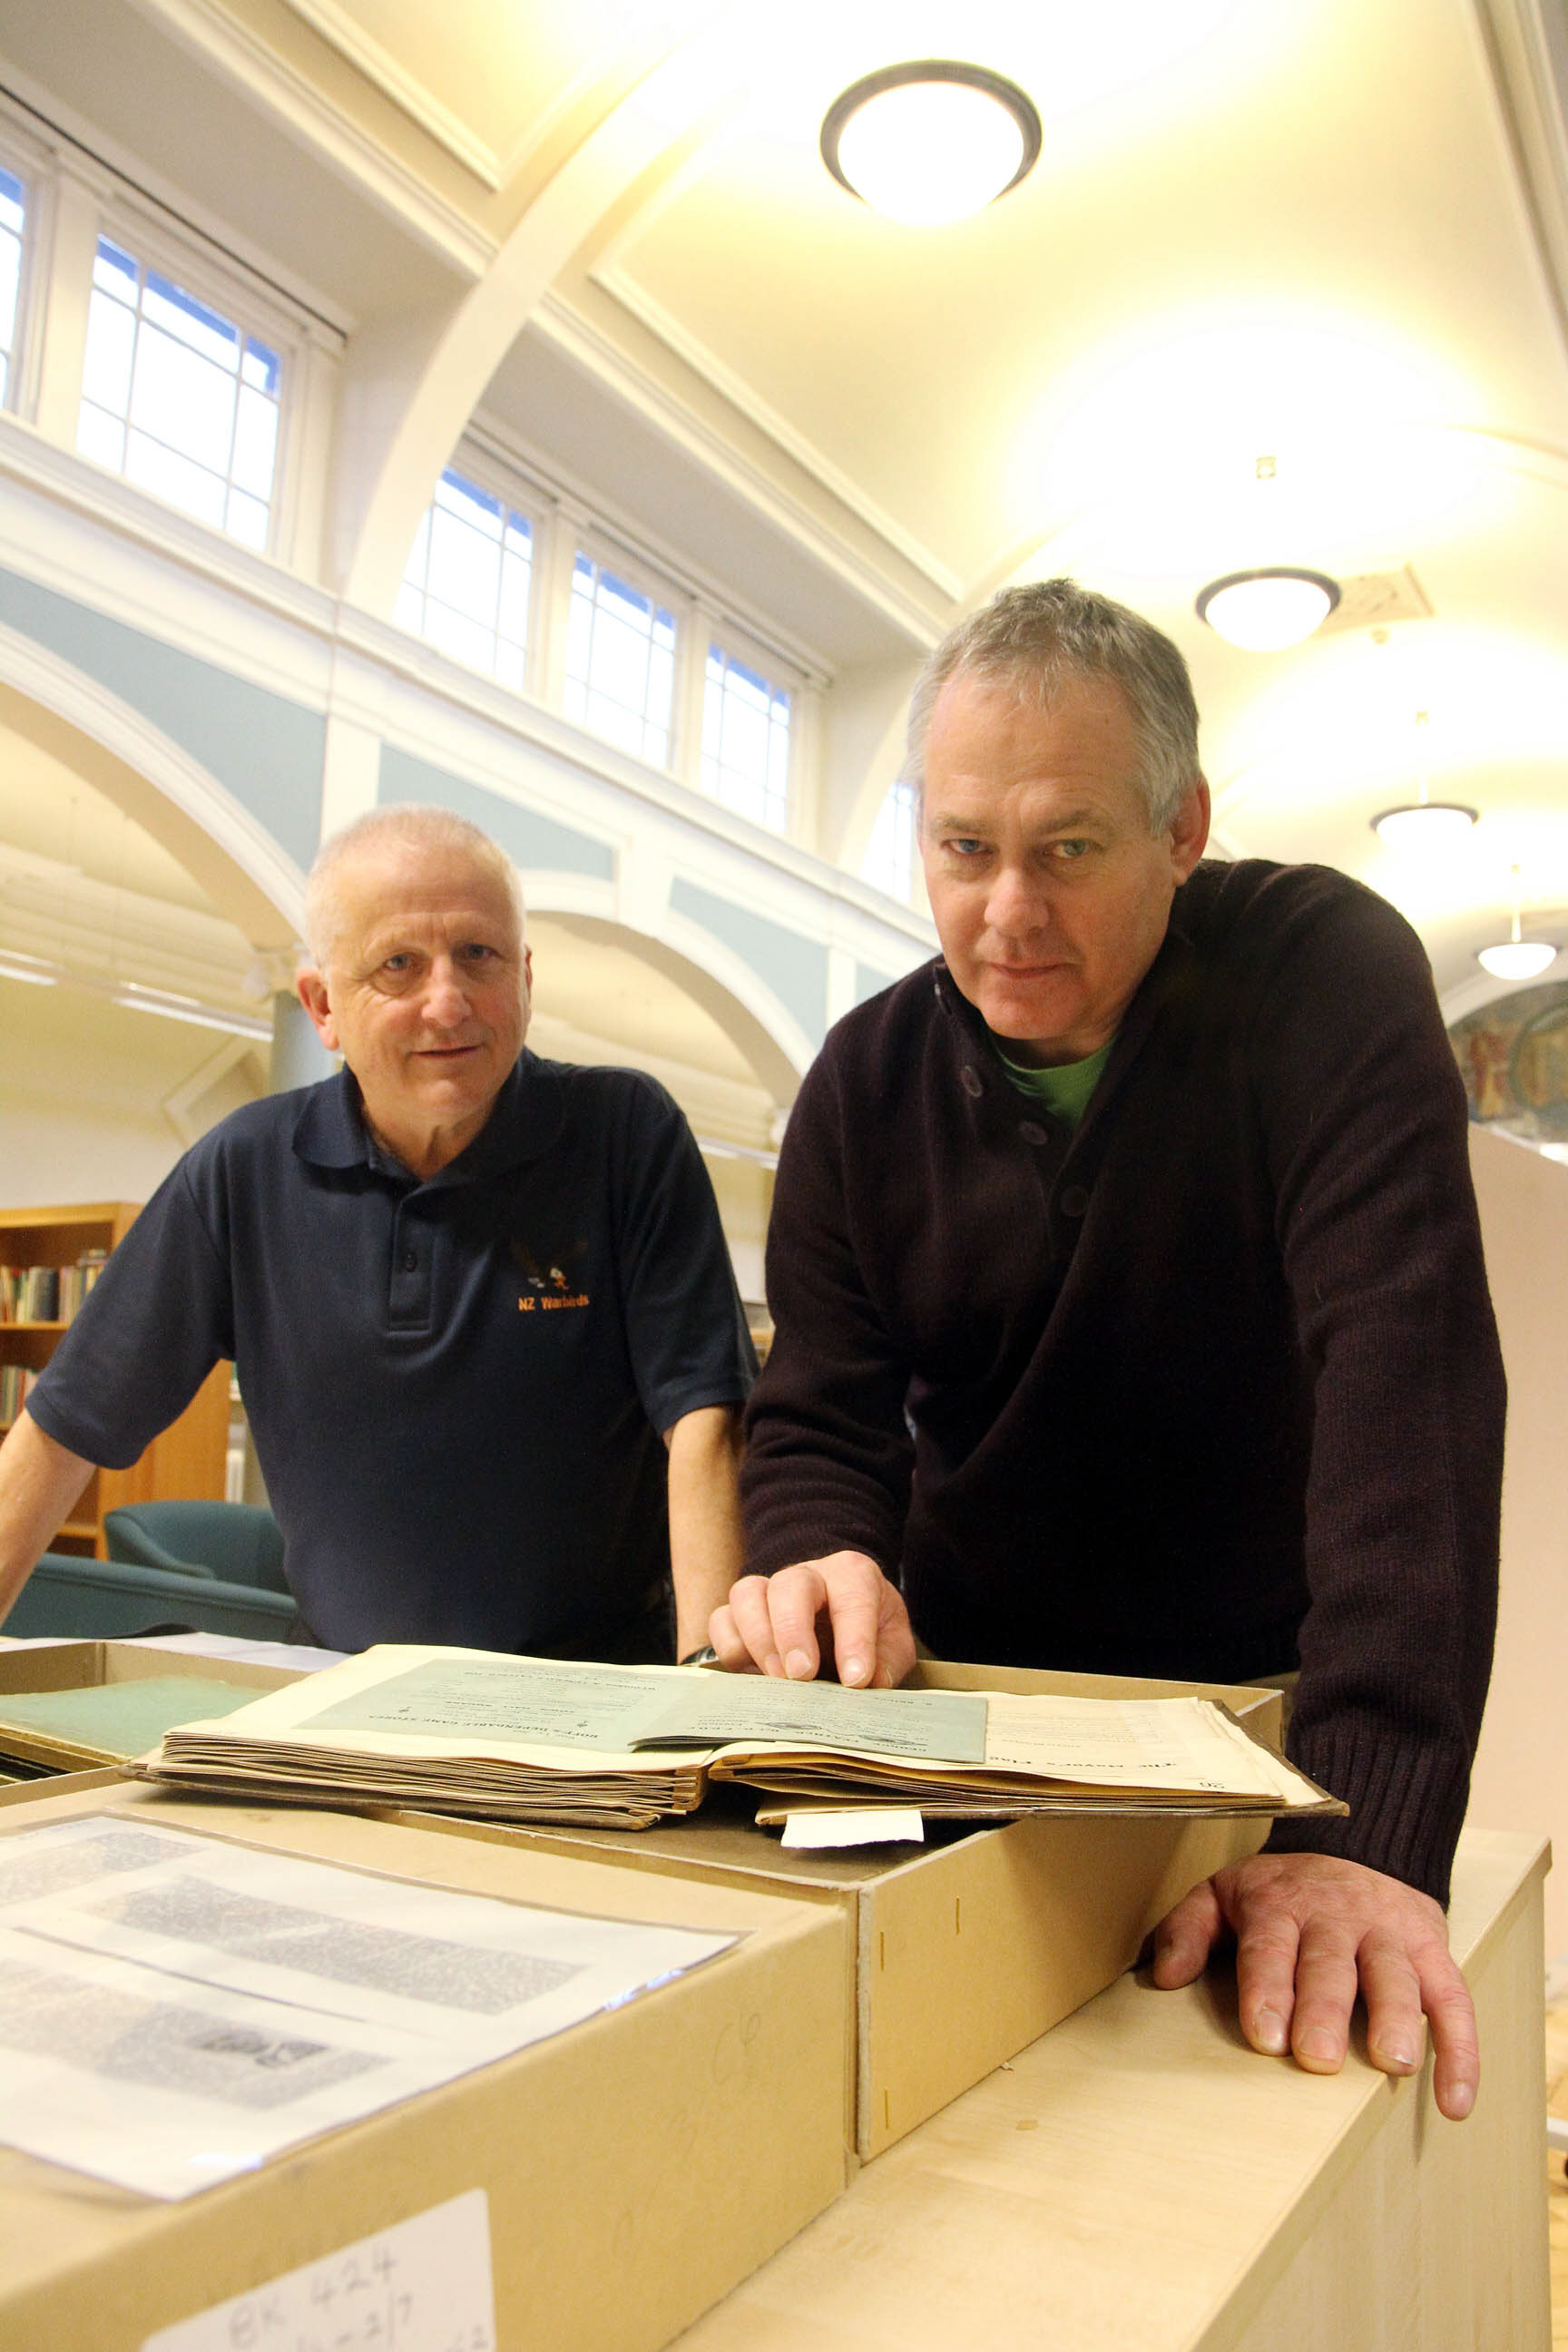 Andy Wade, right, and Ian Walkden, from Men of Worth, look at First World War archives in Keighley library